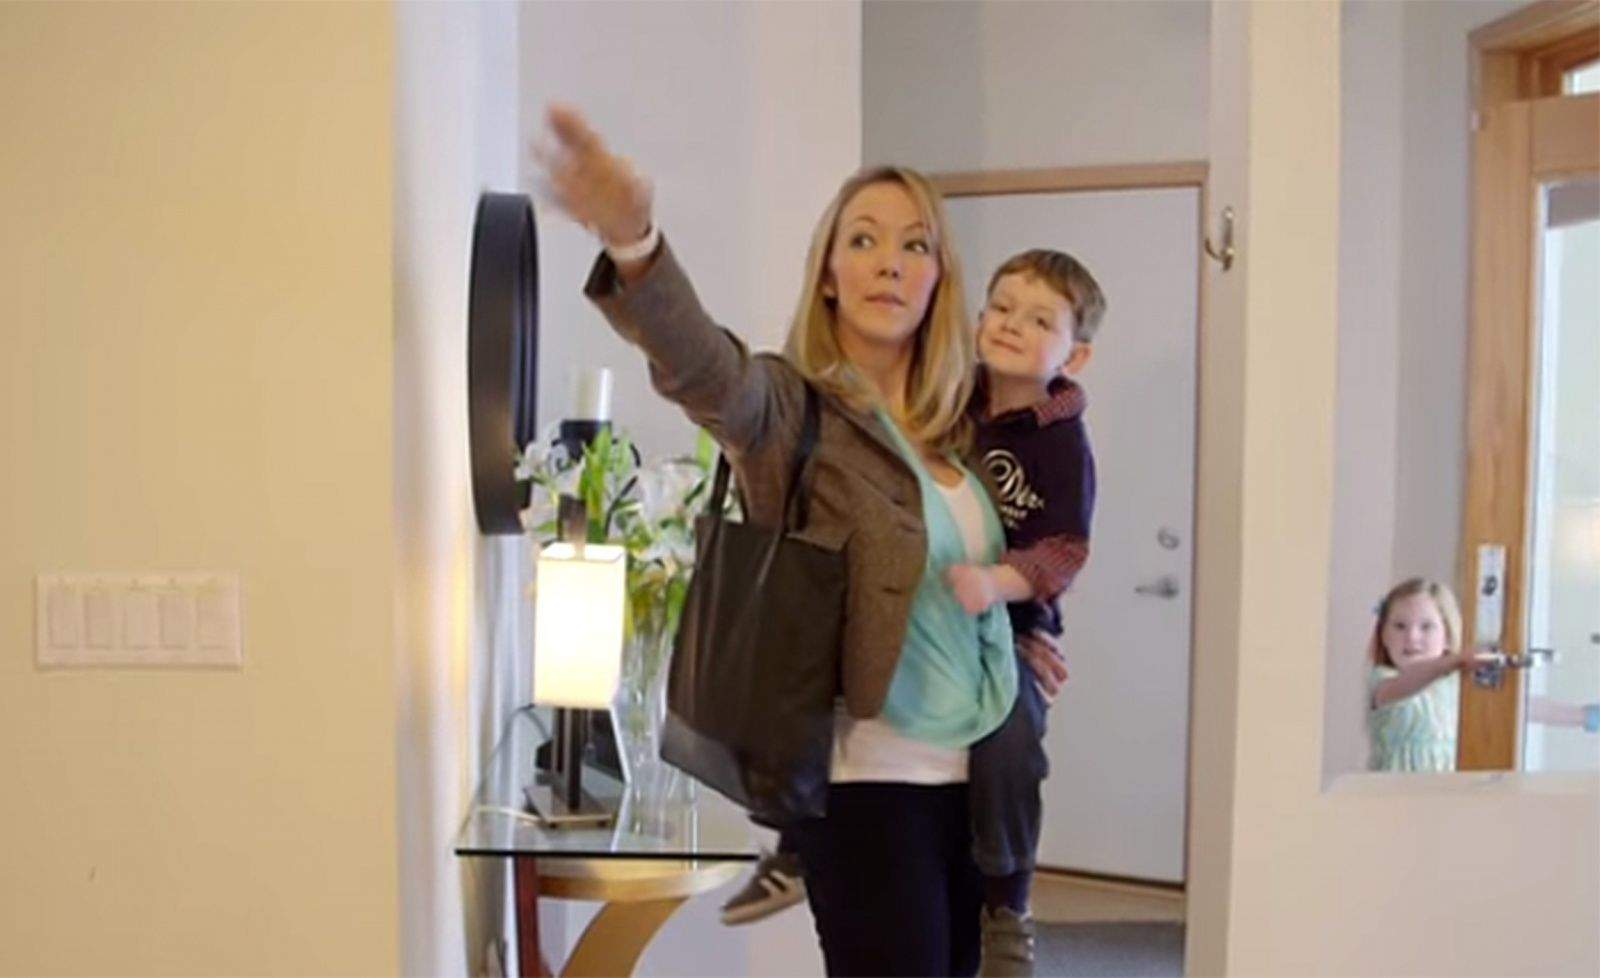 In this demonstration video, a mother gestures to turn off the lights thanks to the Reemo smartwatch she is wearing. Photo: Reemo/YouTube